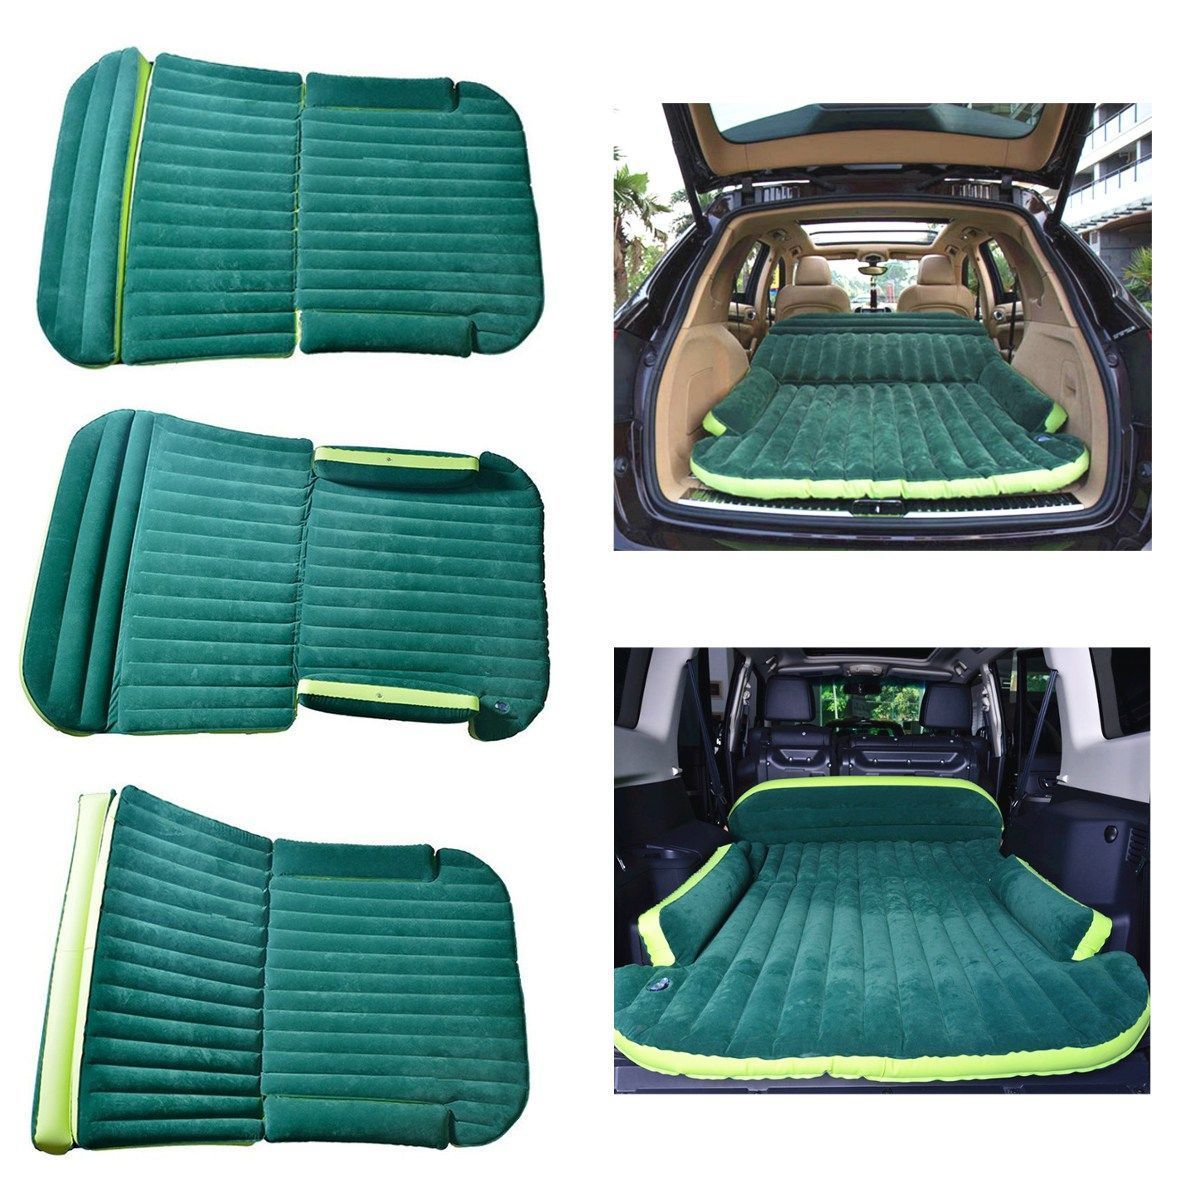 Heavy Duty Air Mattress >> Heavy Duty Inflatable Air Mattresses For Truck Bed Suv Back